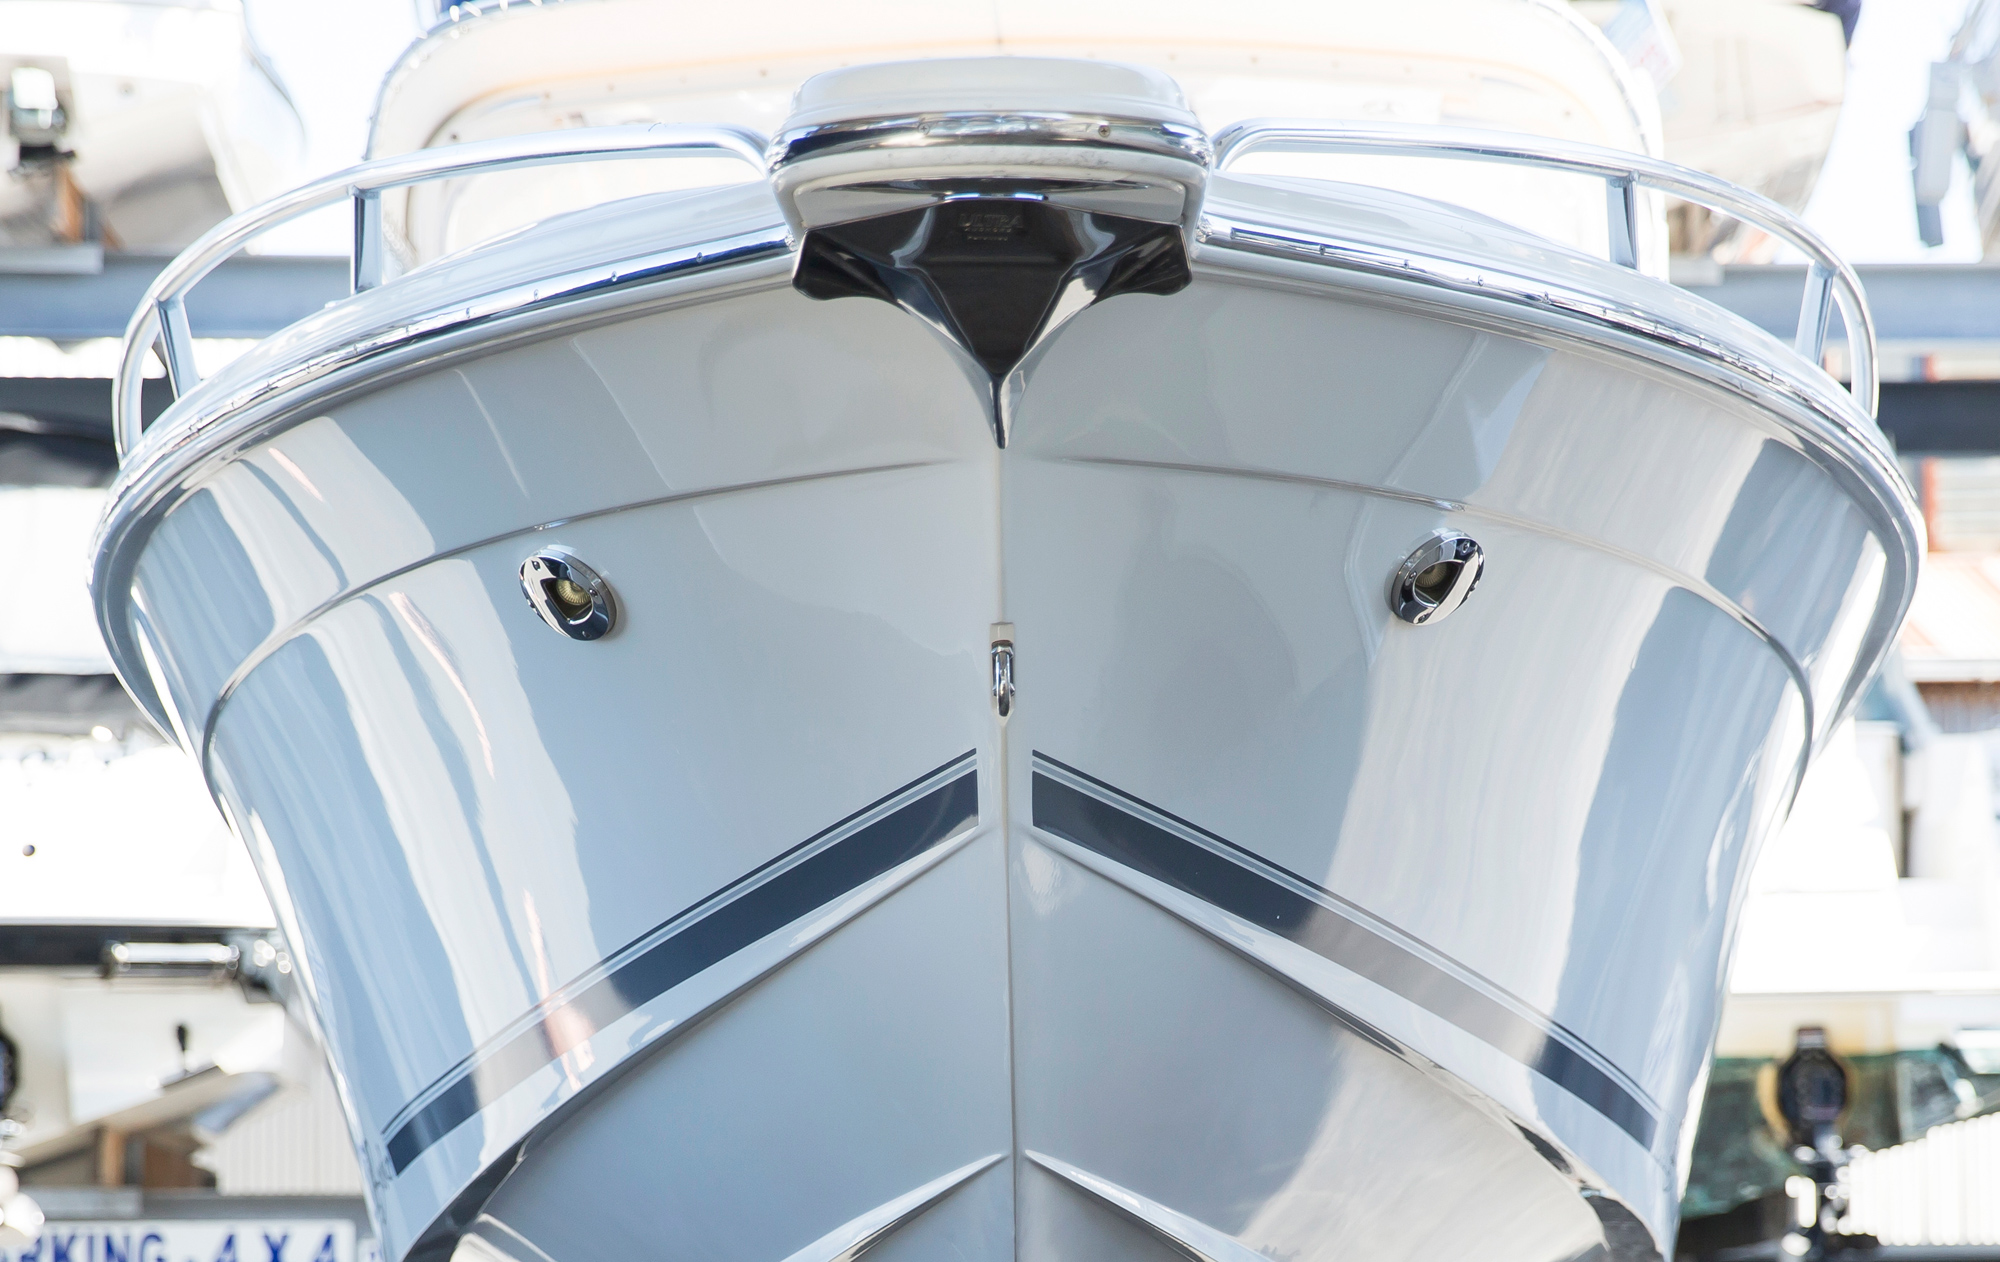 Fibreglass Repairs | Gel Coat Repairs | Marine Boat Polishing |